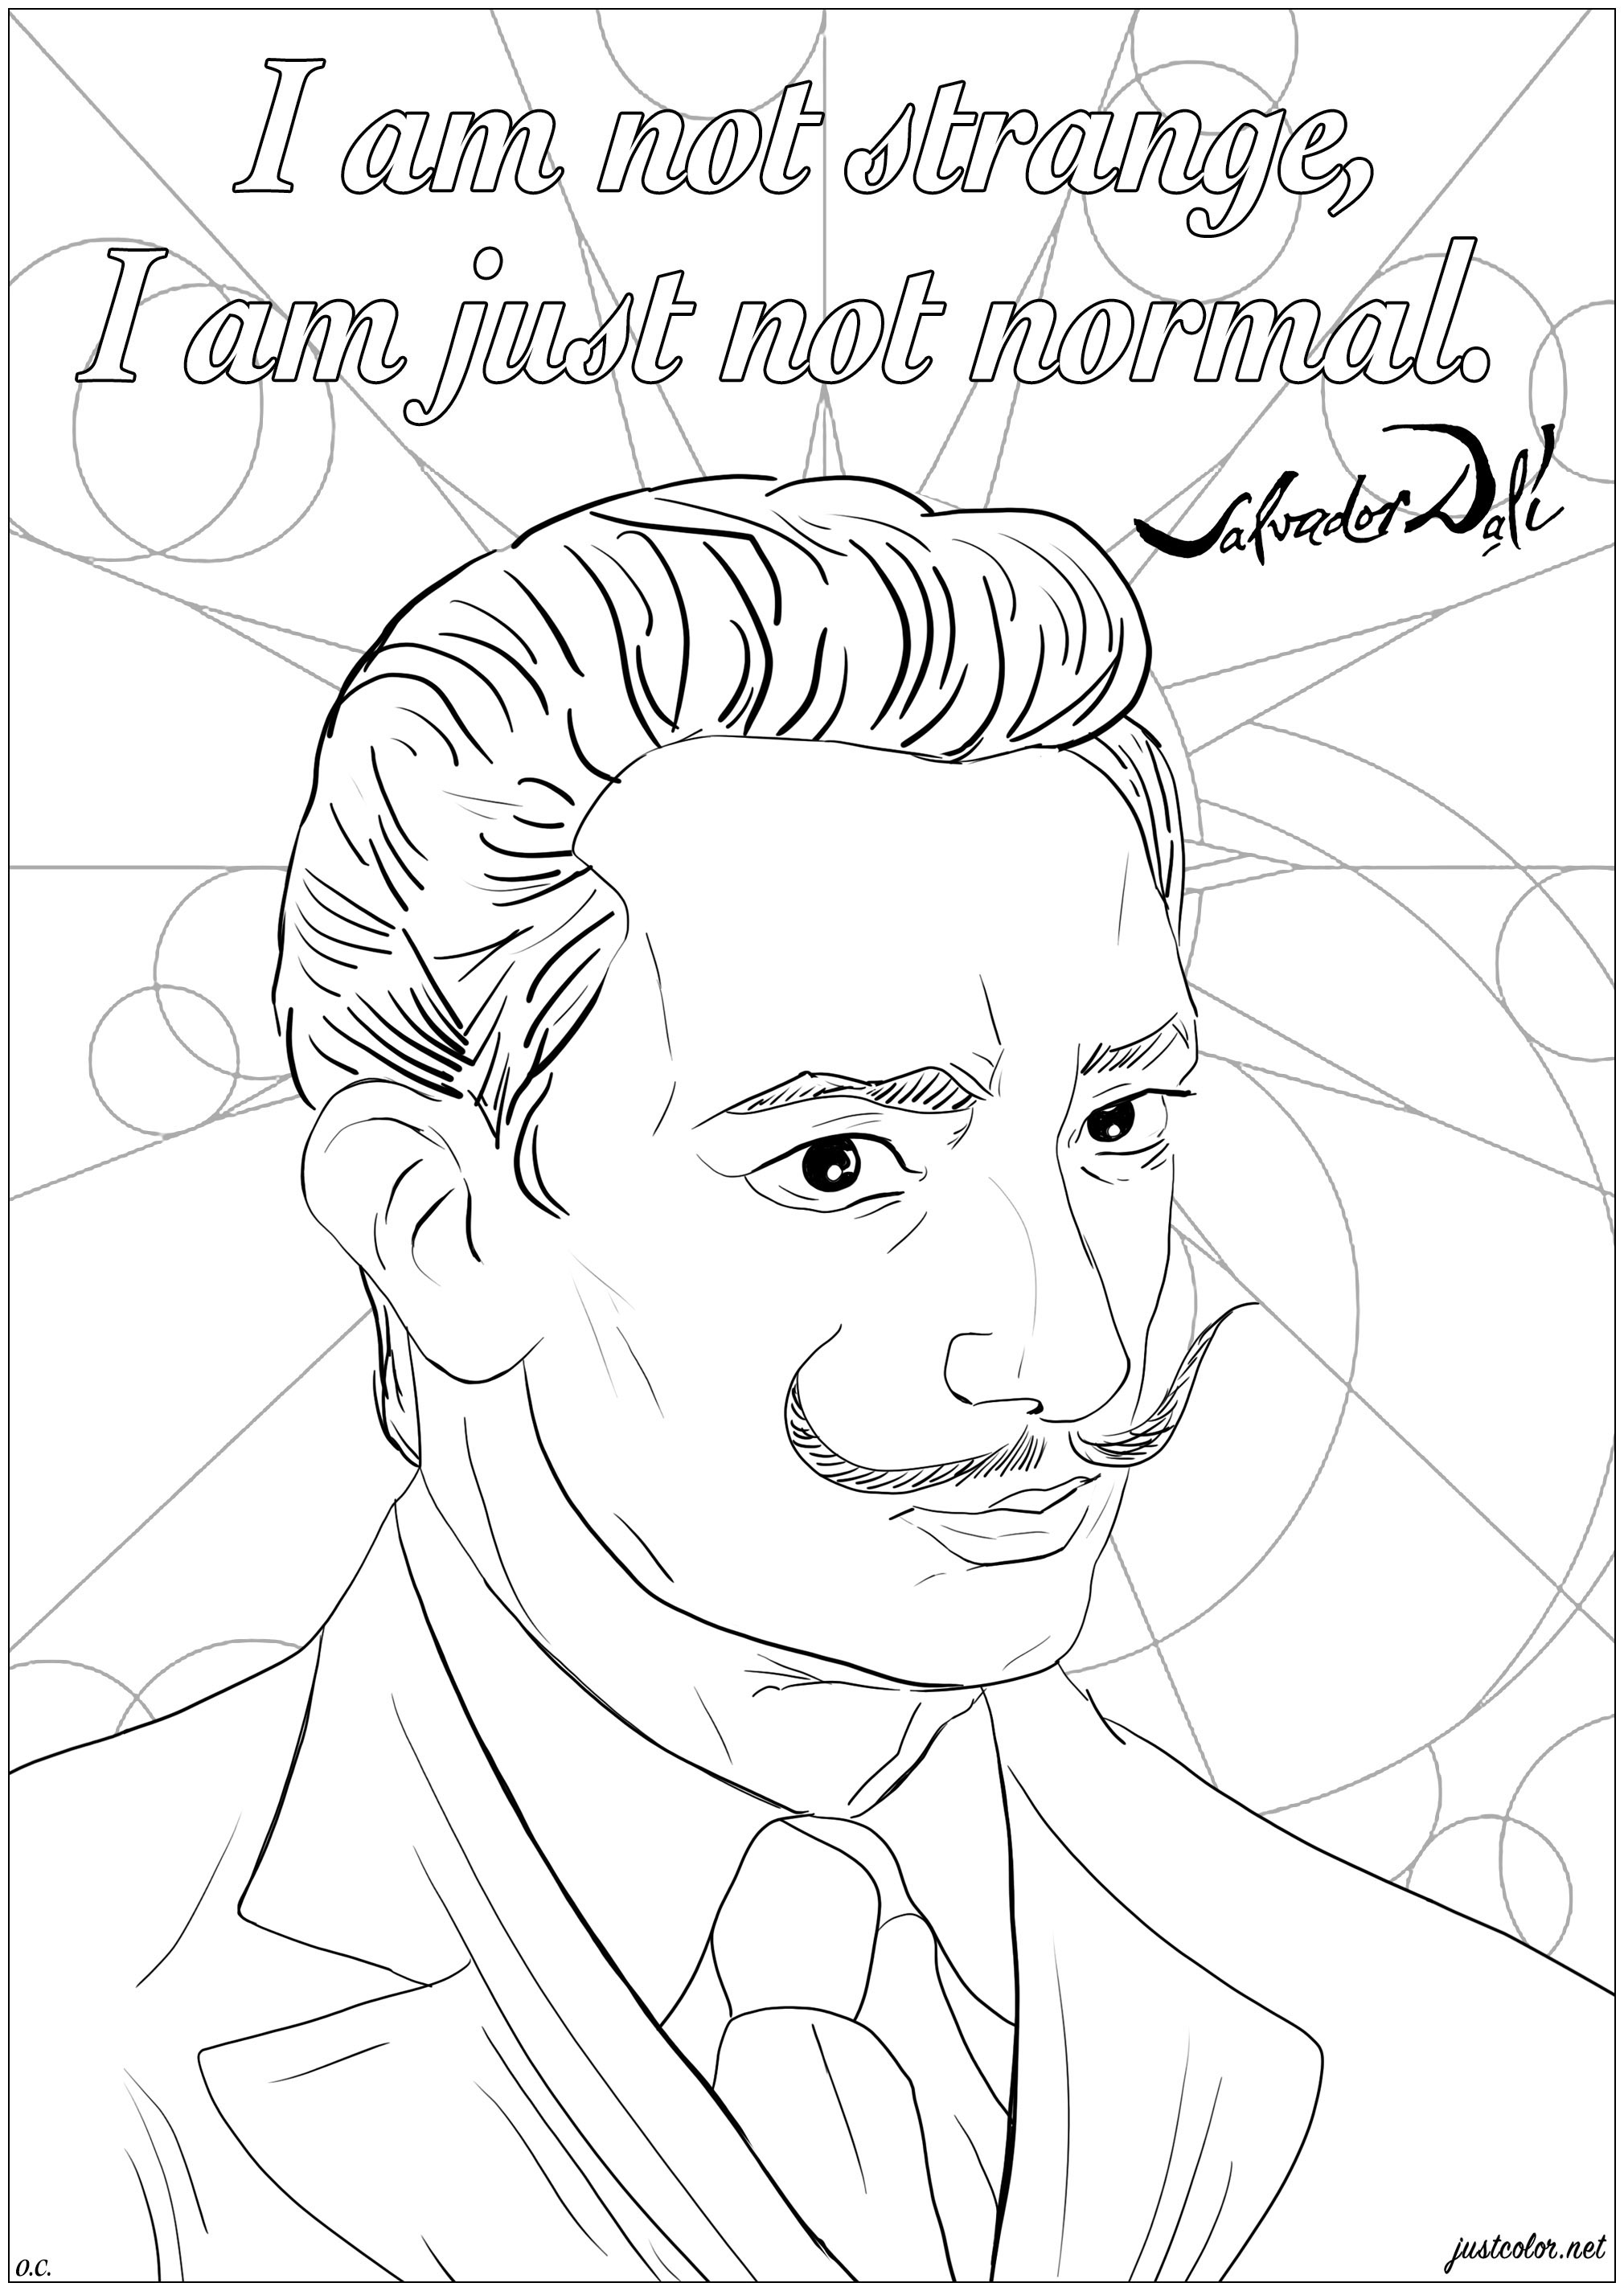 Coloring page of Salvador Dalí portrait with his famous quote : ' I am not strange, I am just not normal'